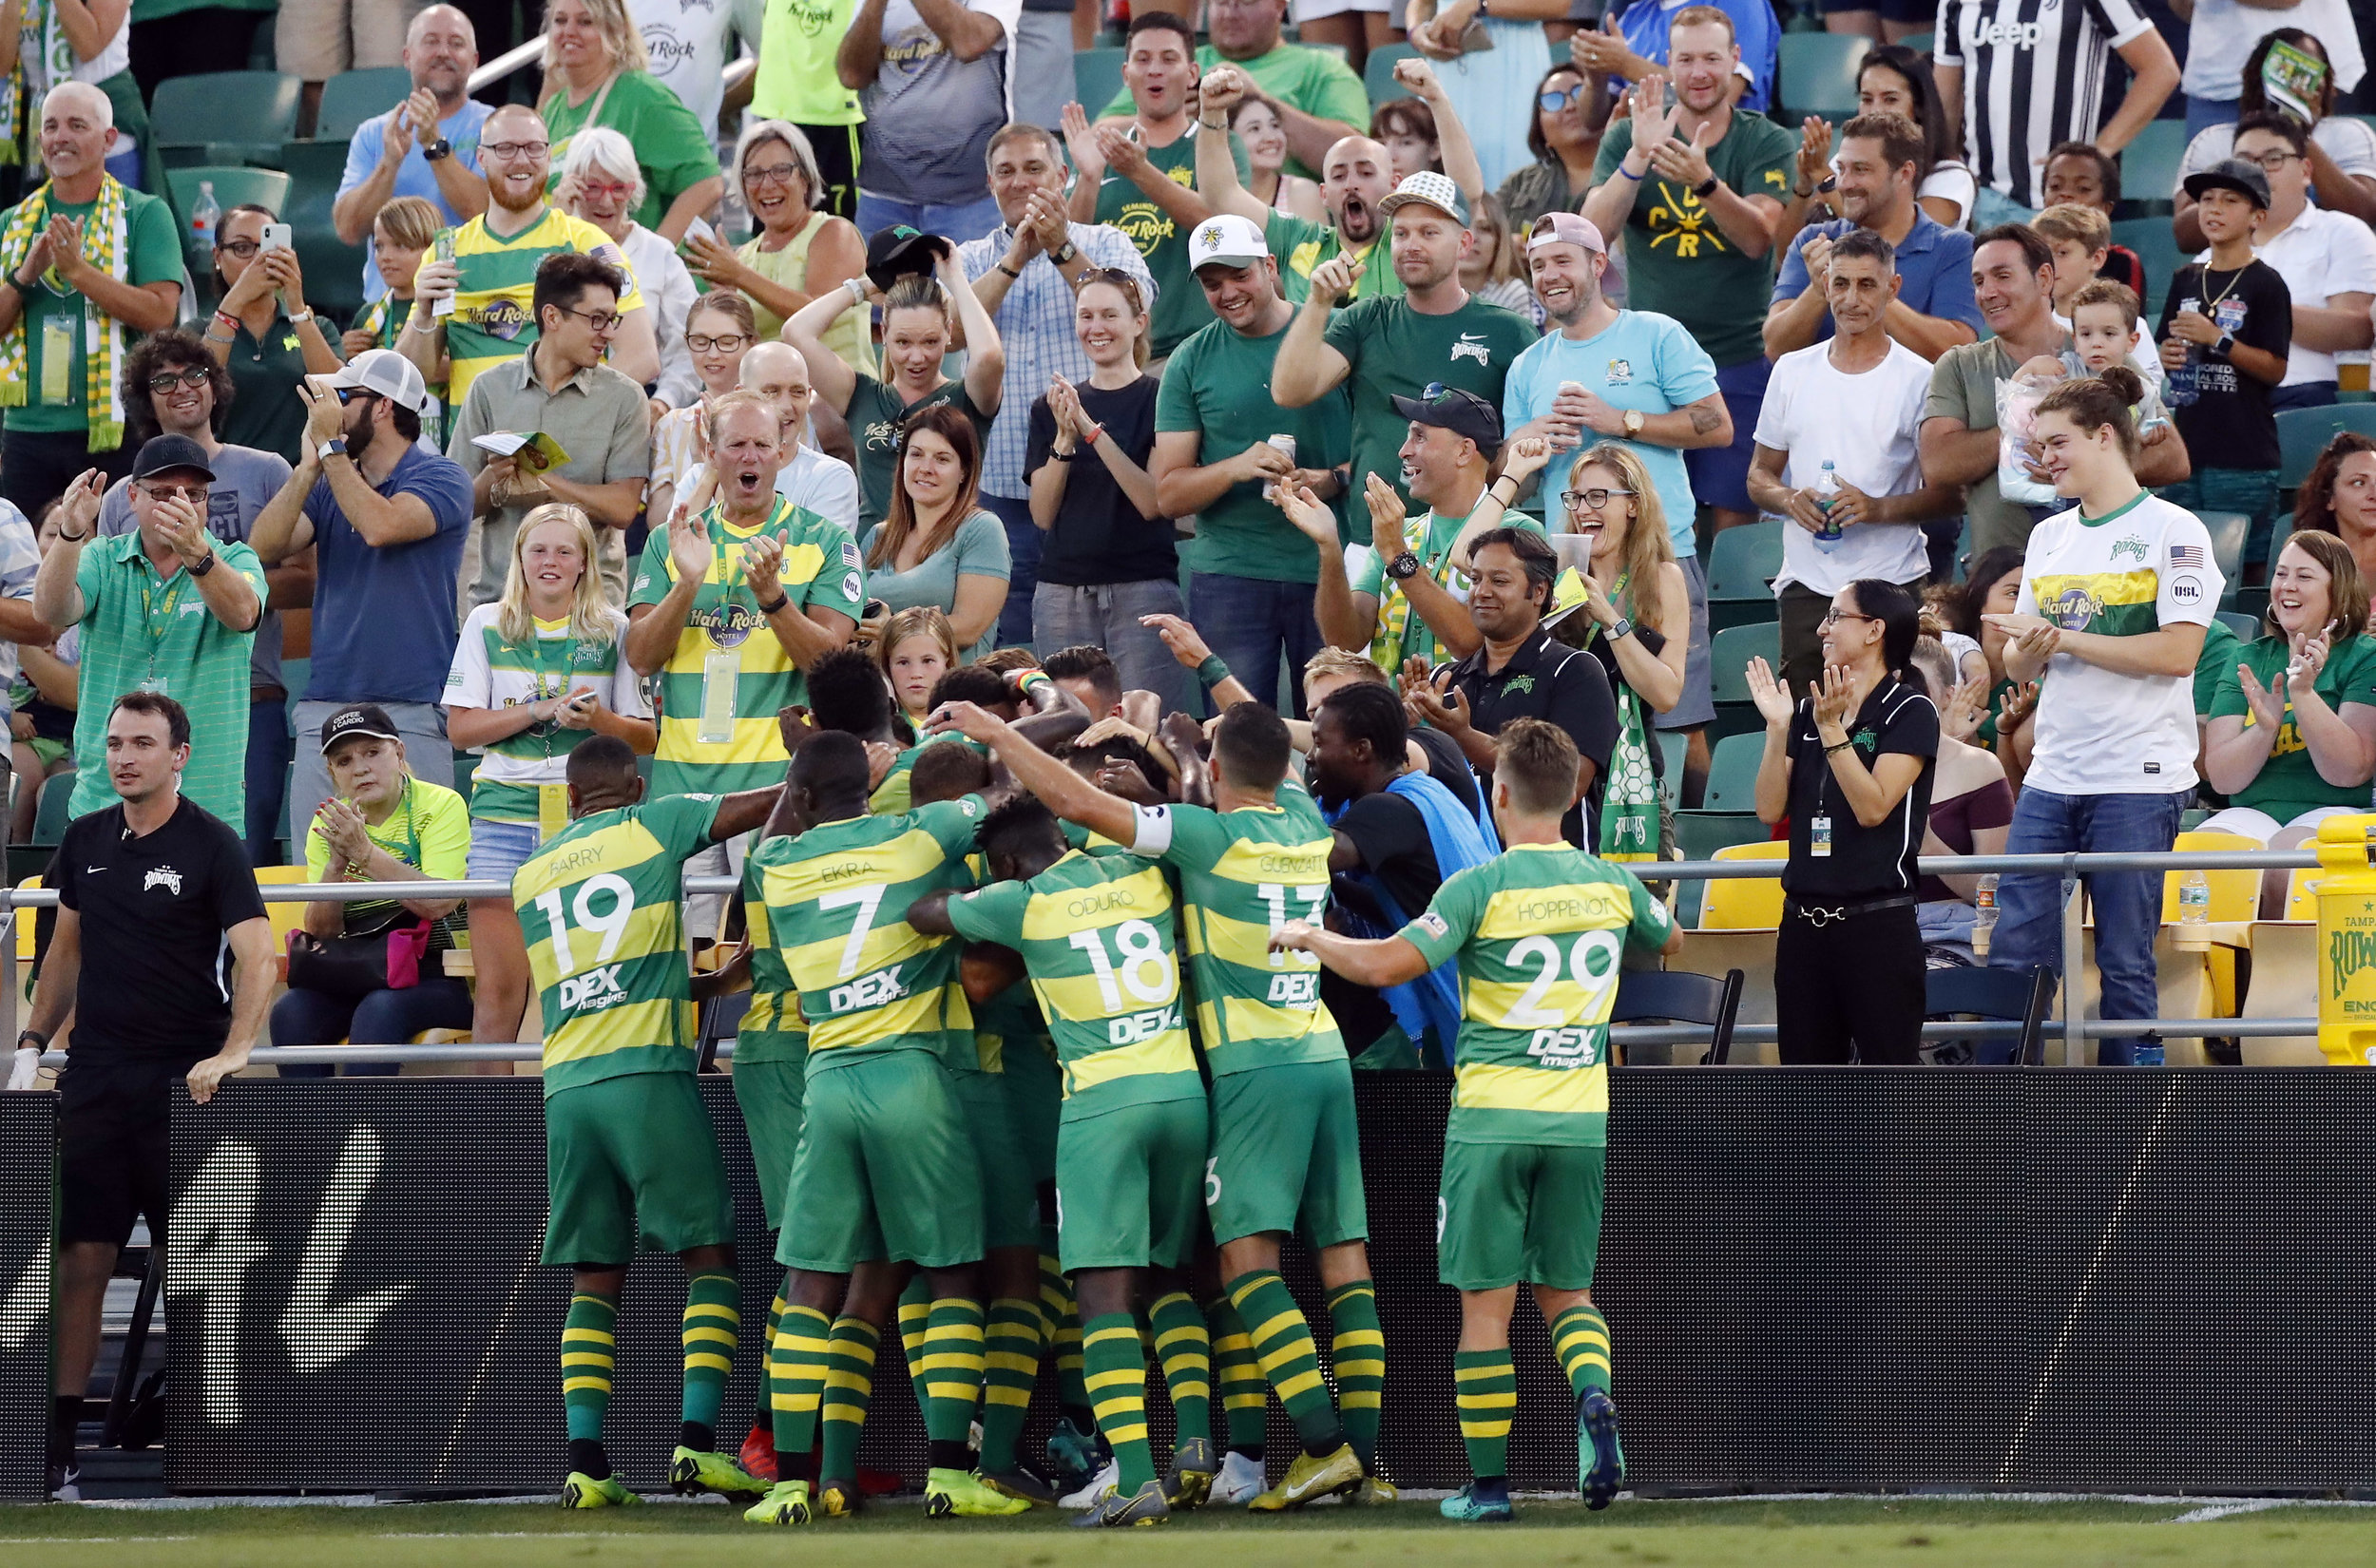 Tampa Bay Rowdies players celebrate in front of their fans.  |   Photo courtesy of Tampa Bay Rowdies/Matt May